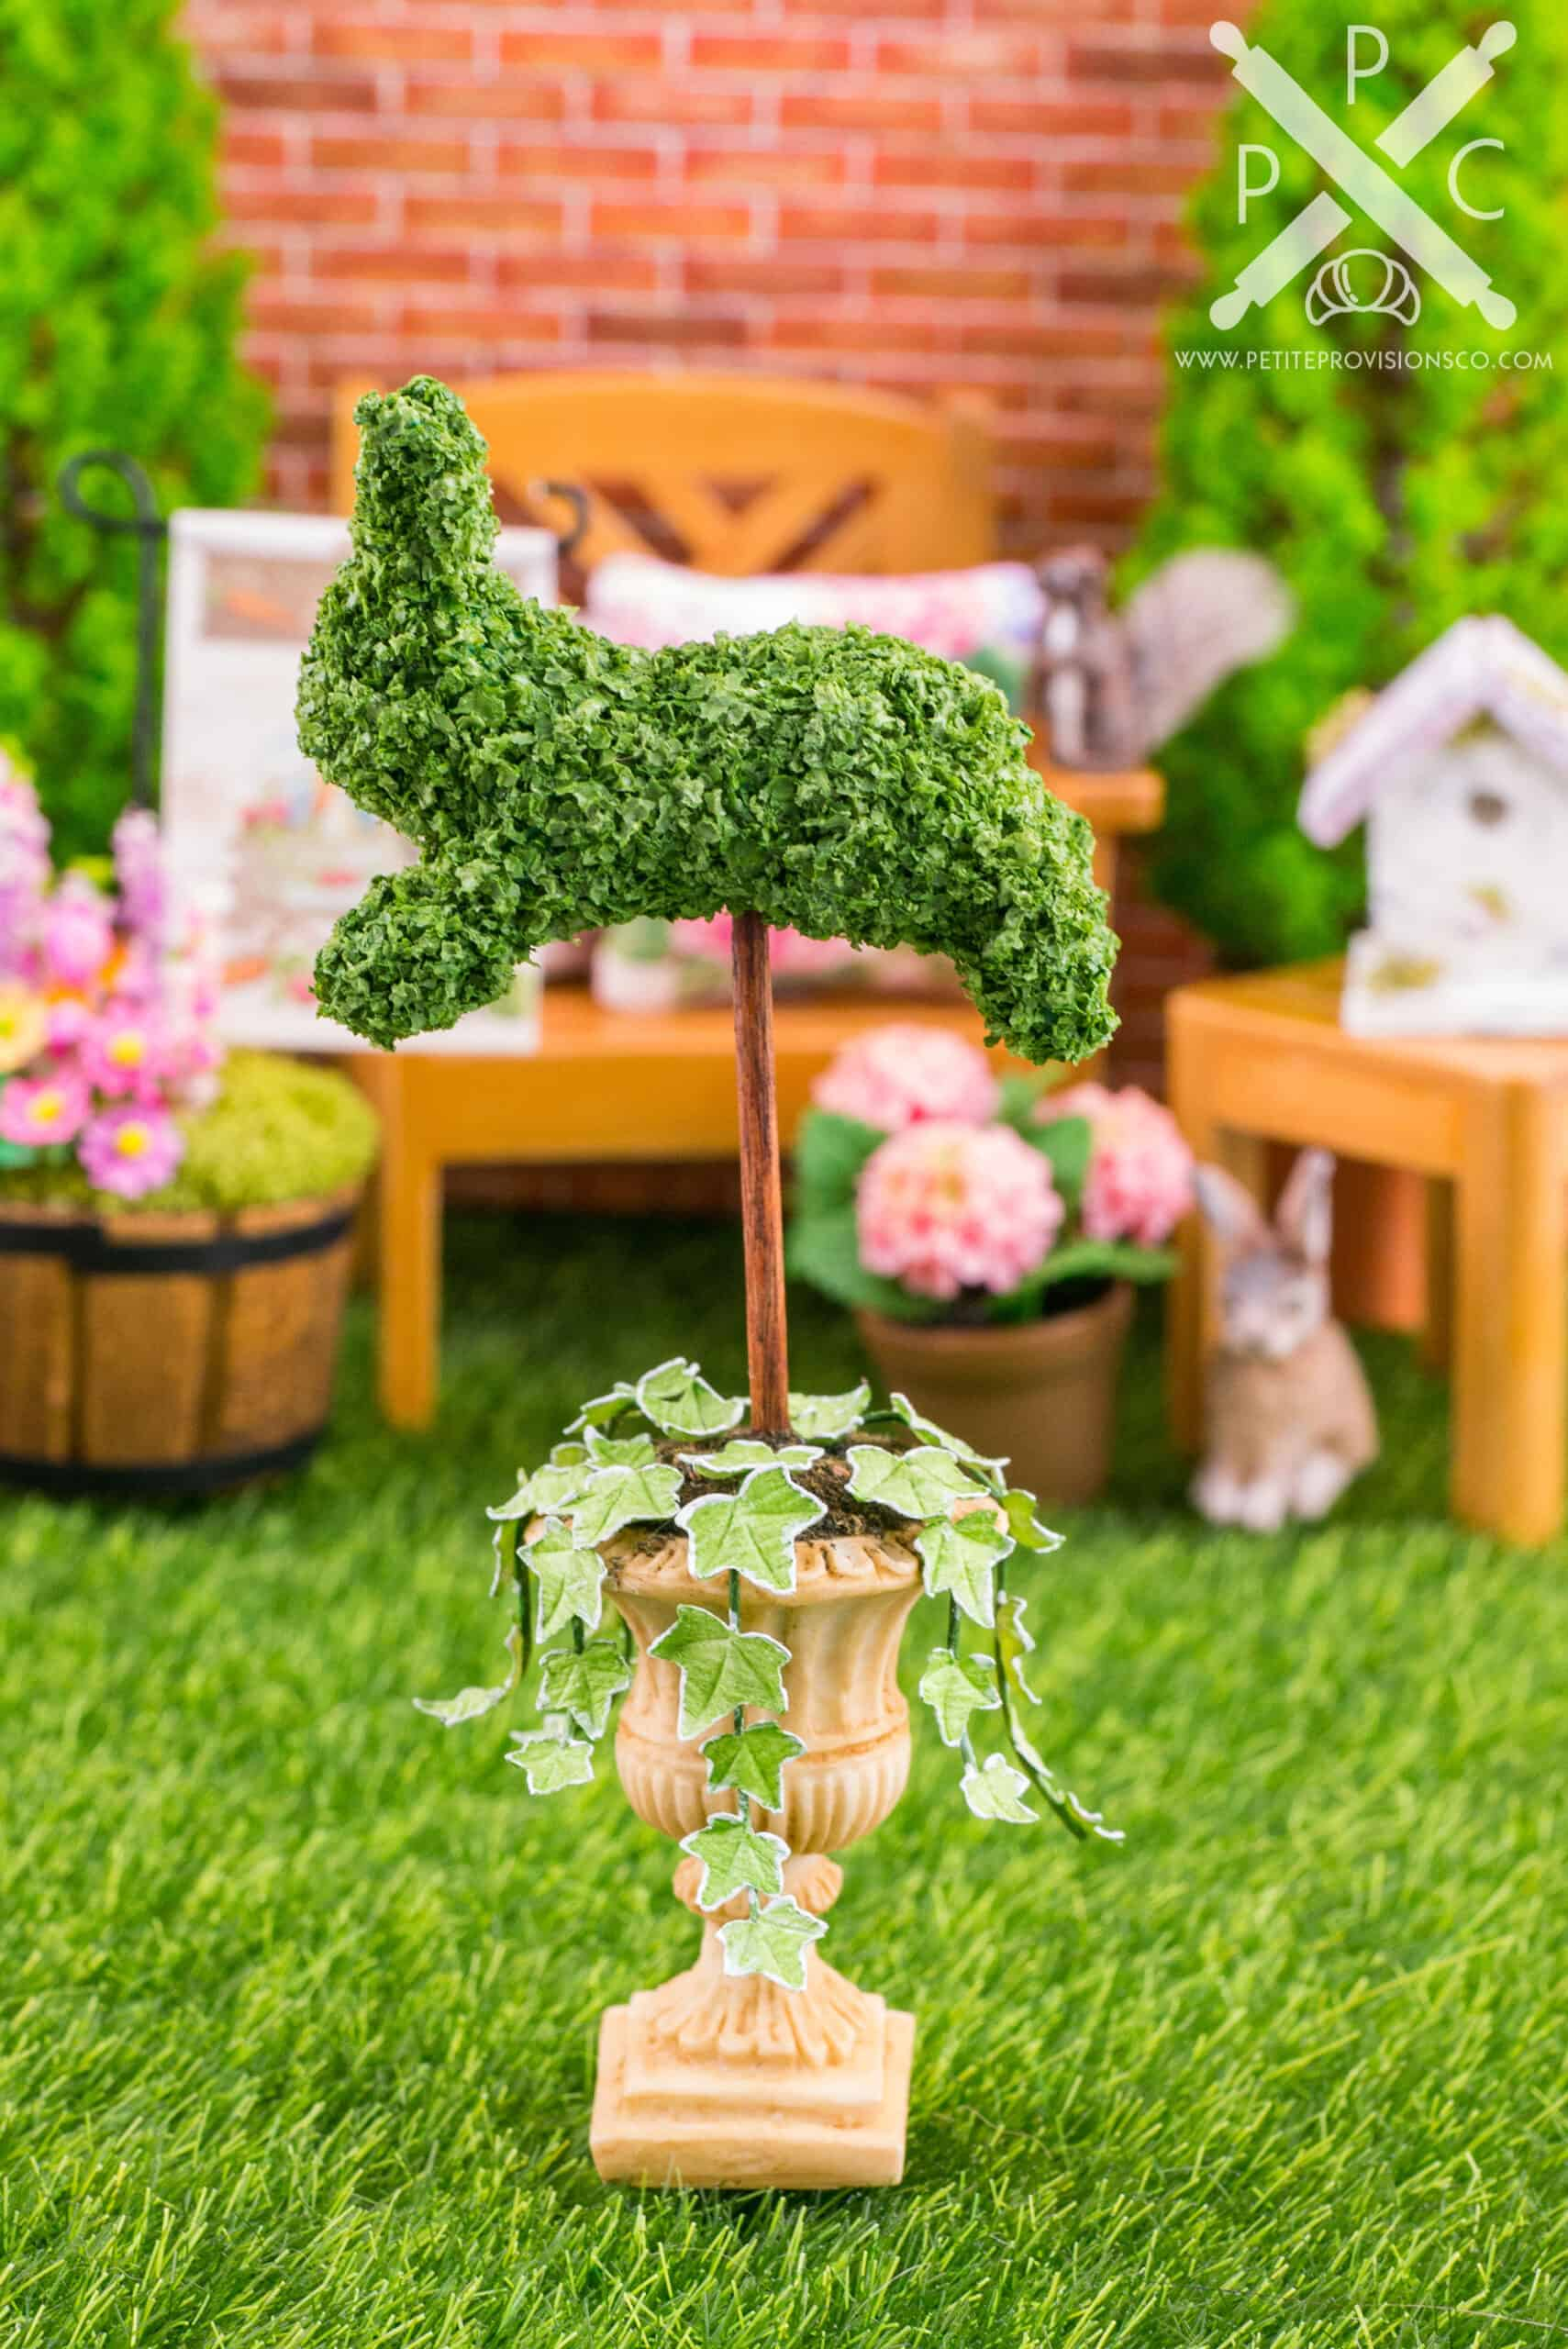 A handmade leaping bunny topiary in one inch scale by The Petite Provisions Co.